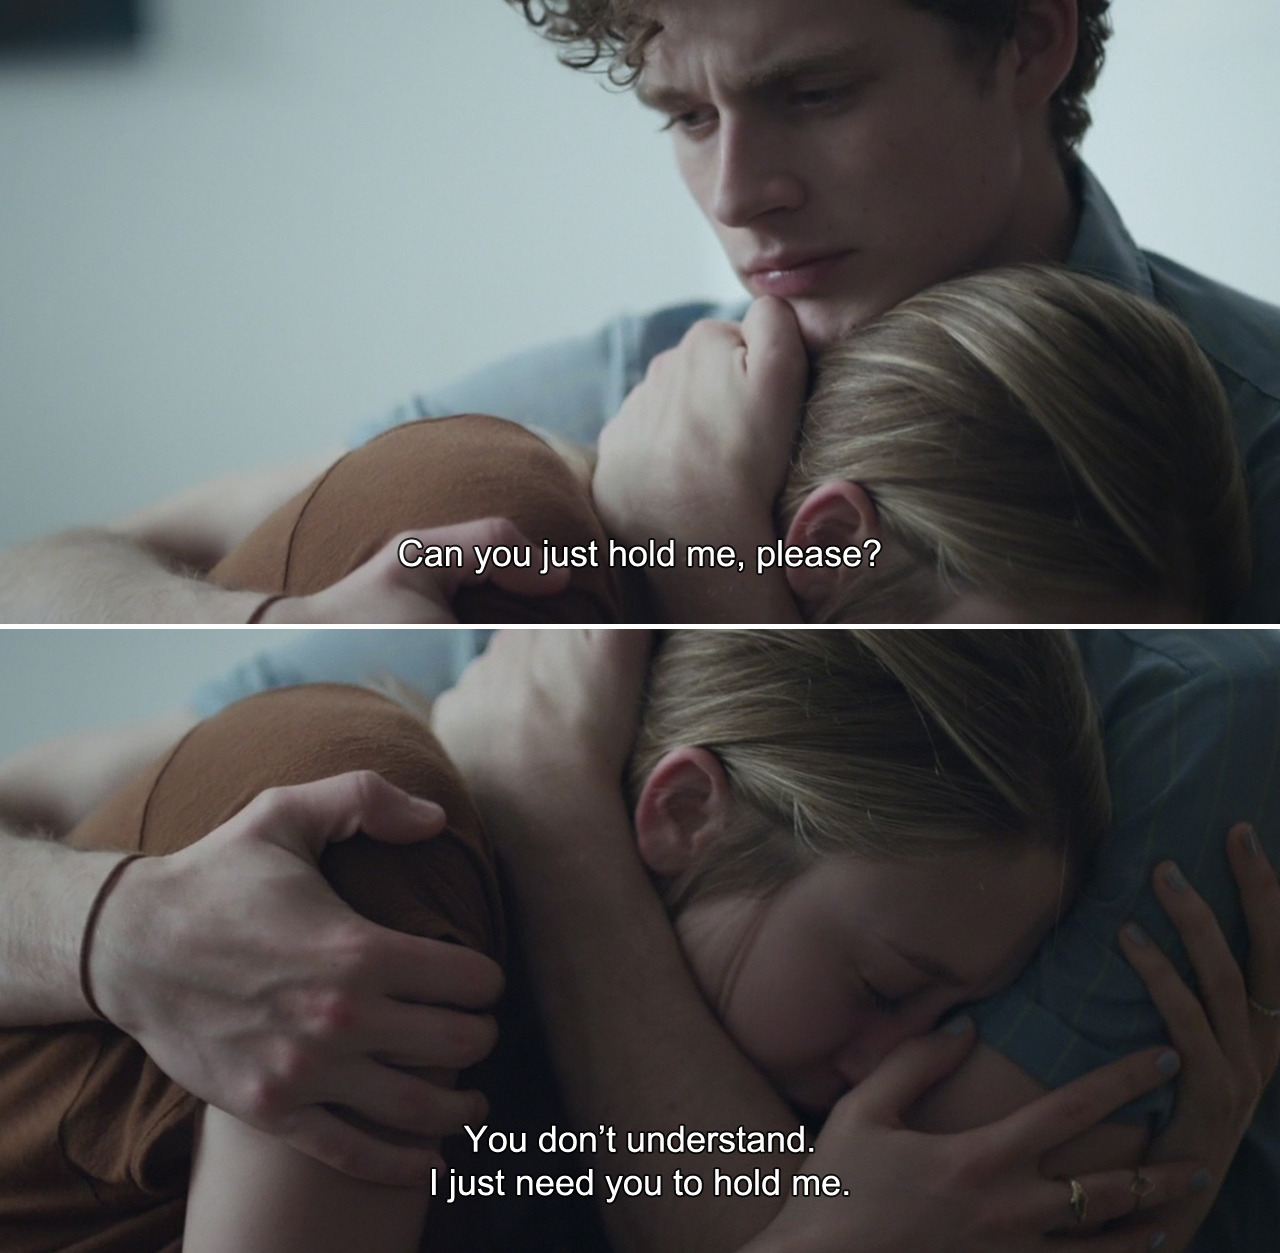 anamorphosis-and-isolate:  ― 6 Years (2015)Melanie:Can you just hold me, please? You don't understand. I just need you to hold me.